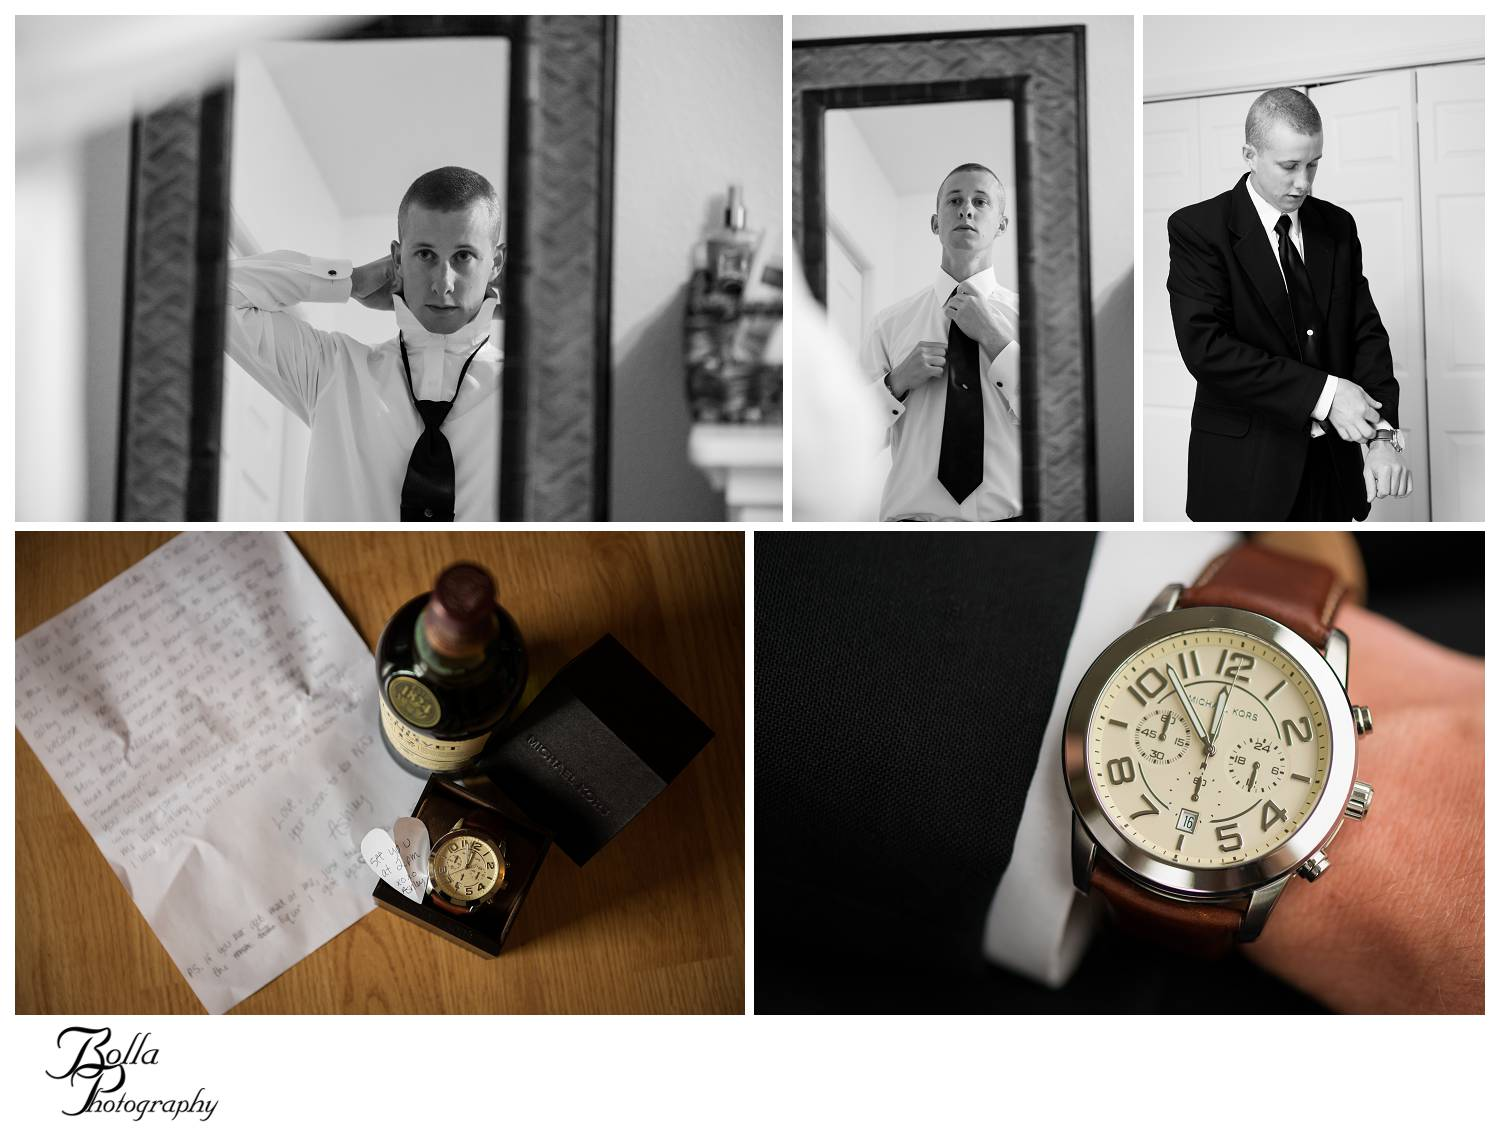 Bolla-photography-saint-louis-wedding-clinton-county-breese-il-3